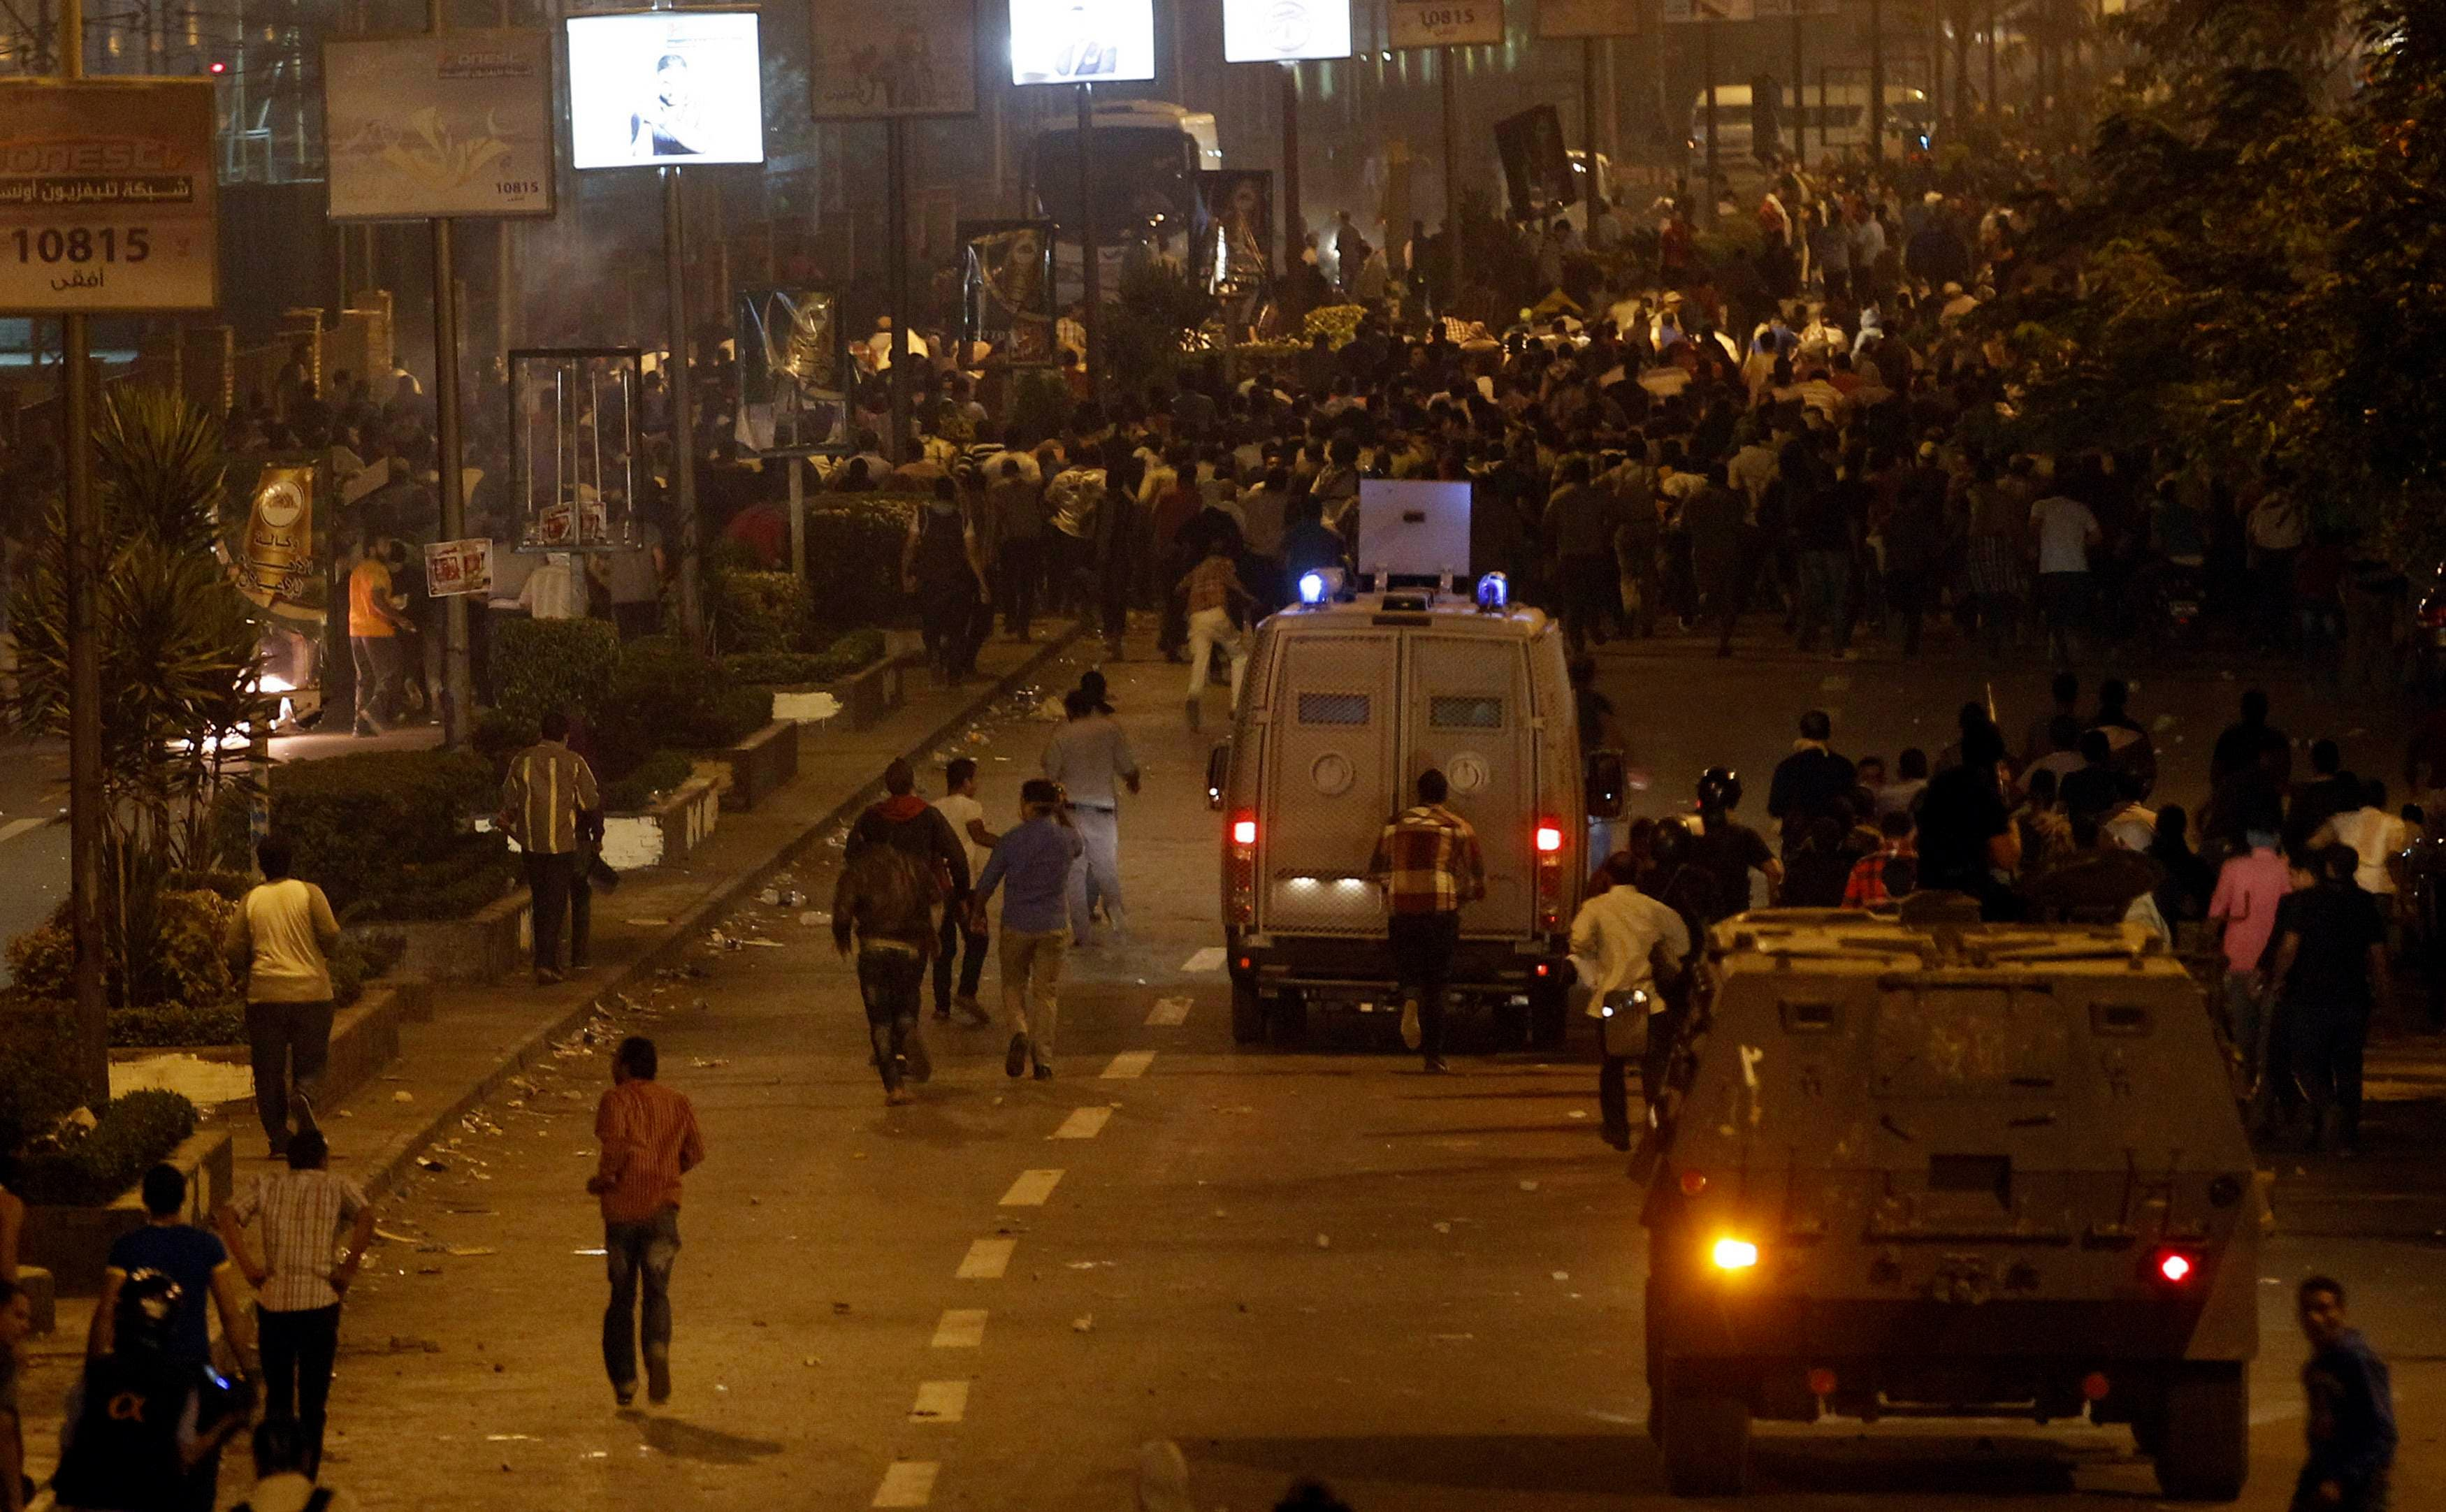 Riot police armored personnel carriers fire rubber bullets and tear gas at members of the Muslim Brotherhood and supporters of ousted Egyptian President Mohamed Mursi during clashes along a road at Ramsis square. (Reuters)